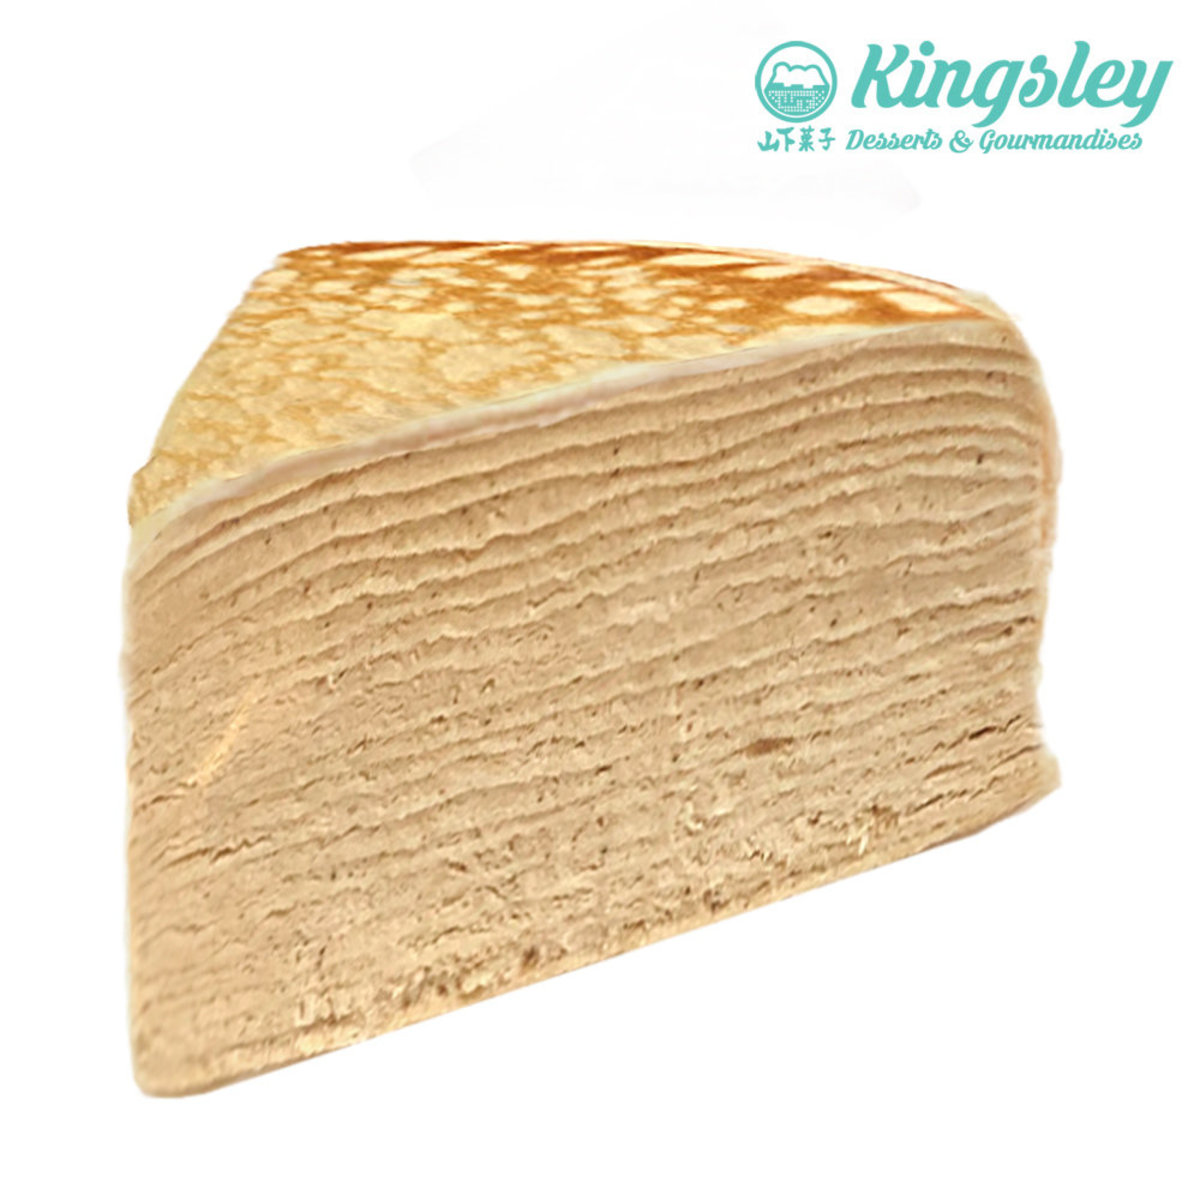 Earl Grey Tea Mille Crepe Cake (Whole)Coupon